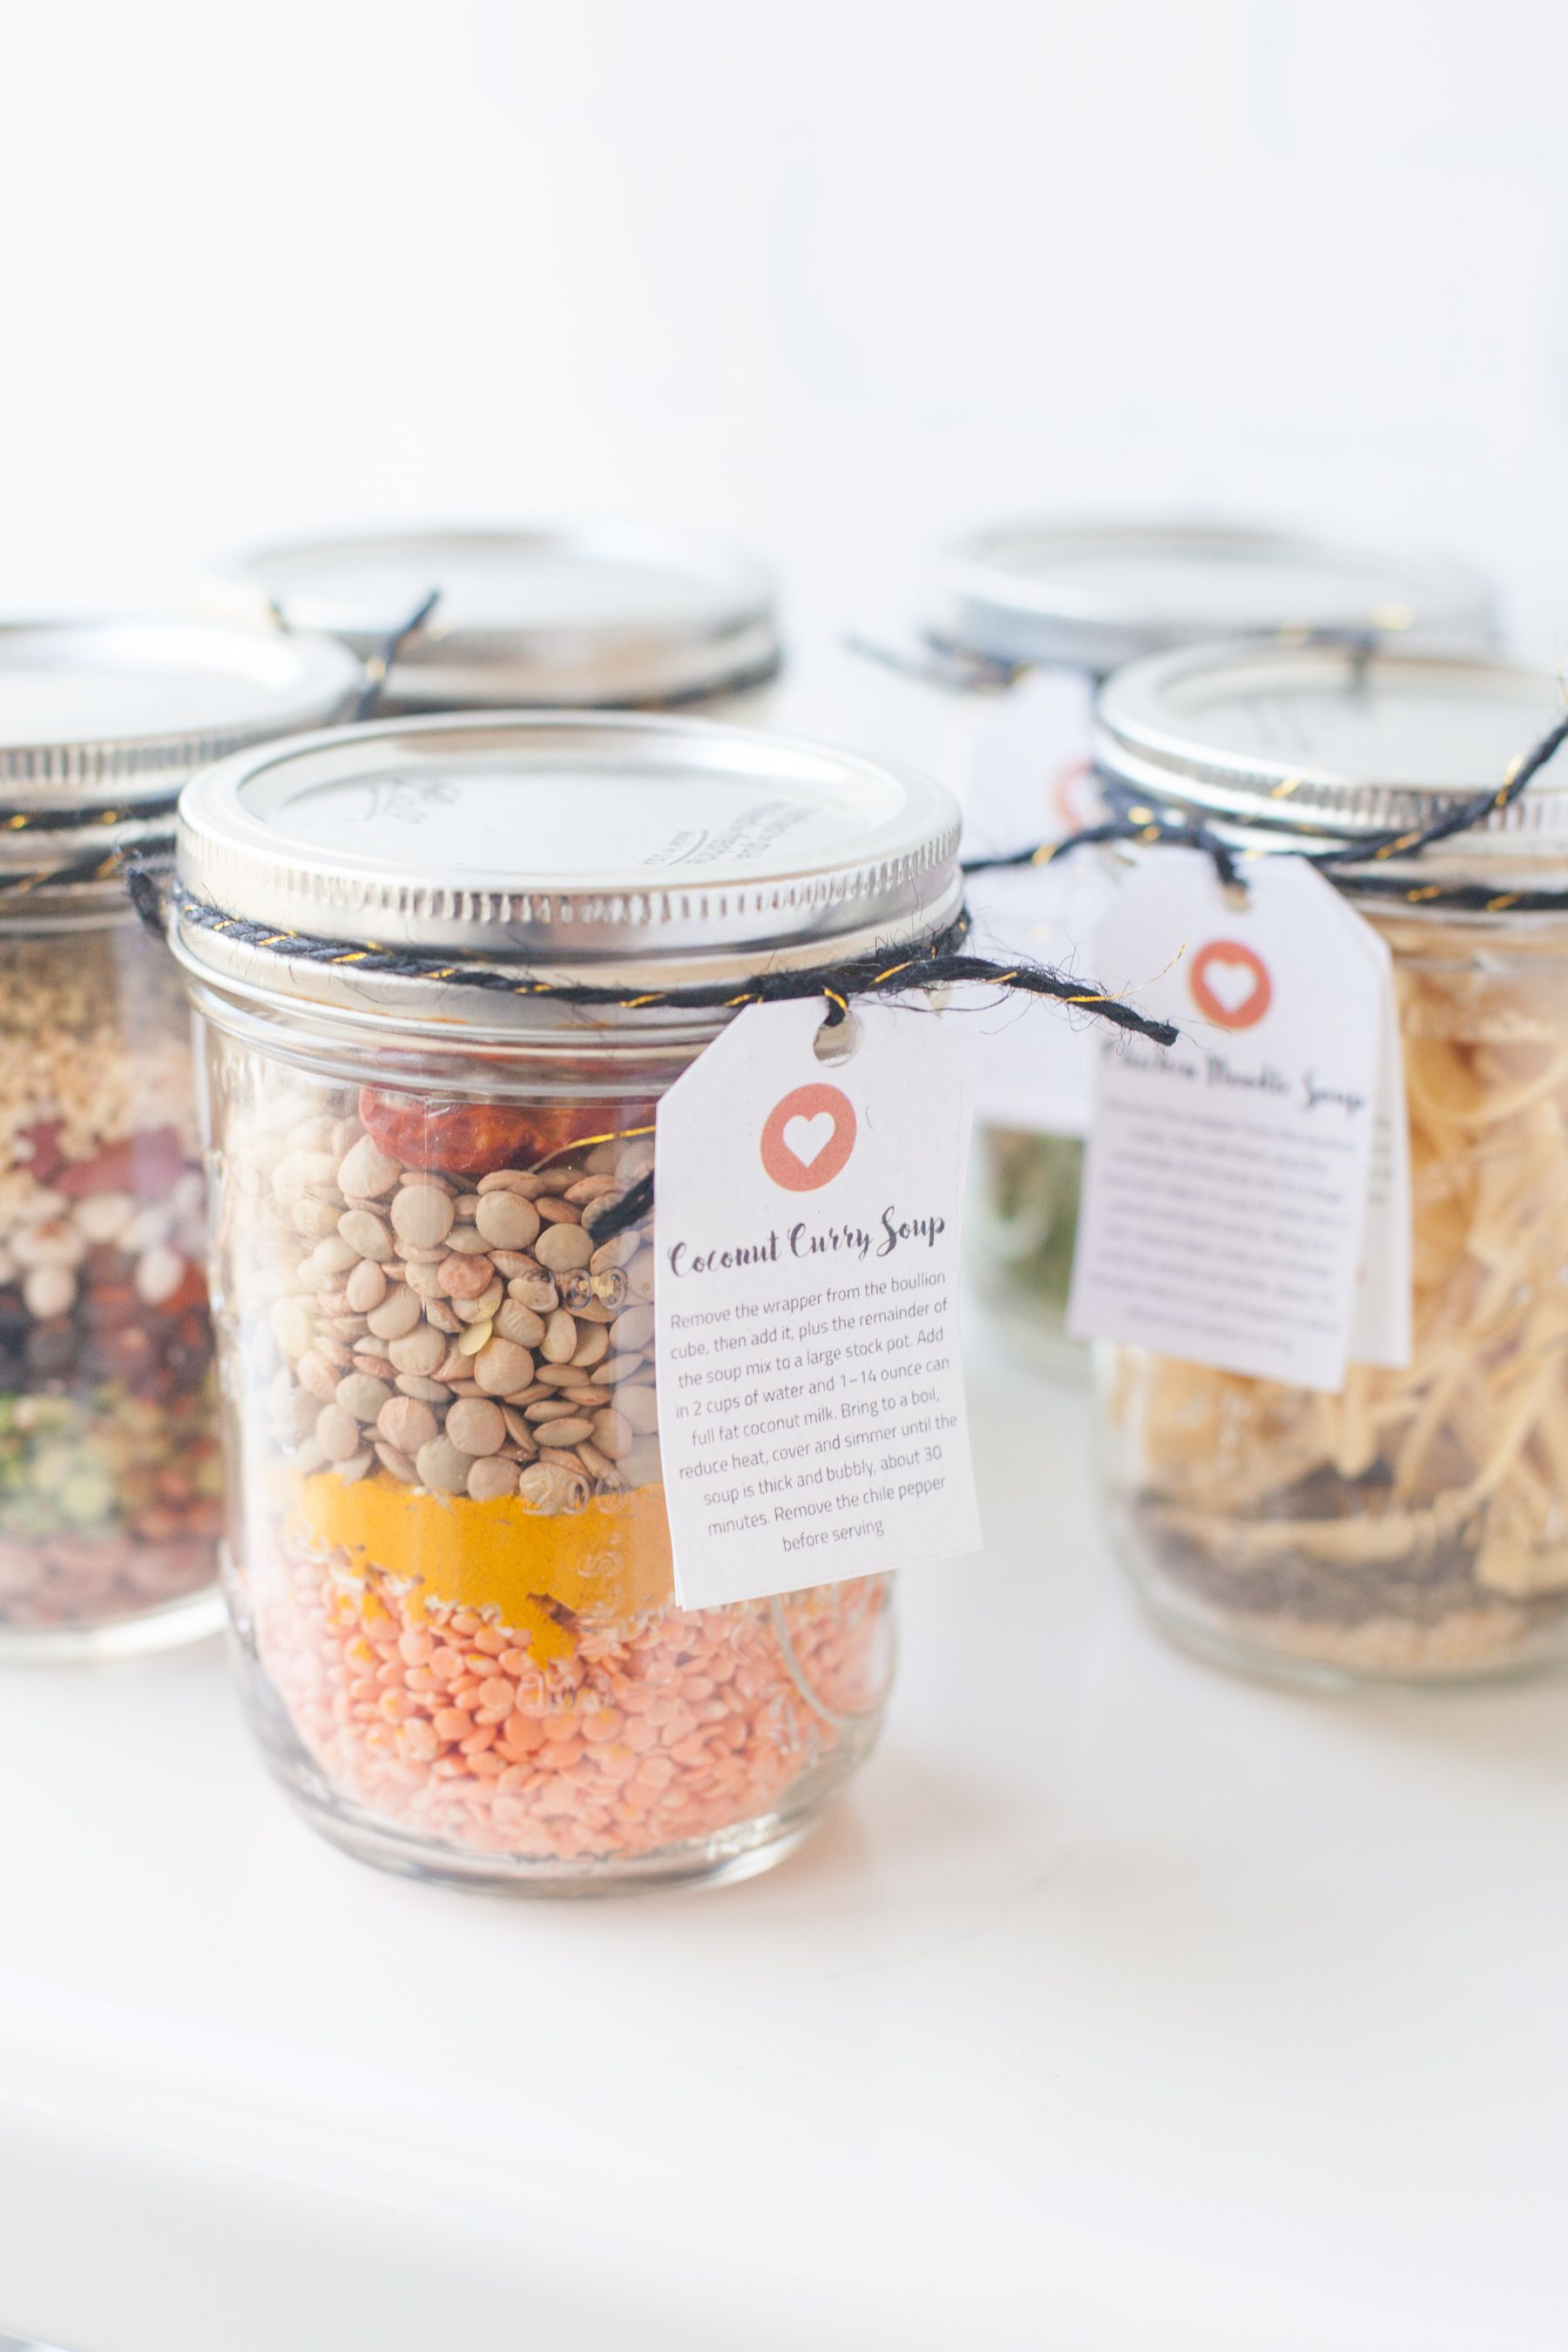 35 Homemade Food Gifts for the Holidays   Food gifts, Homemade and Gift